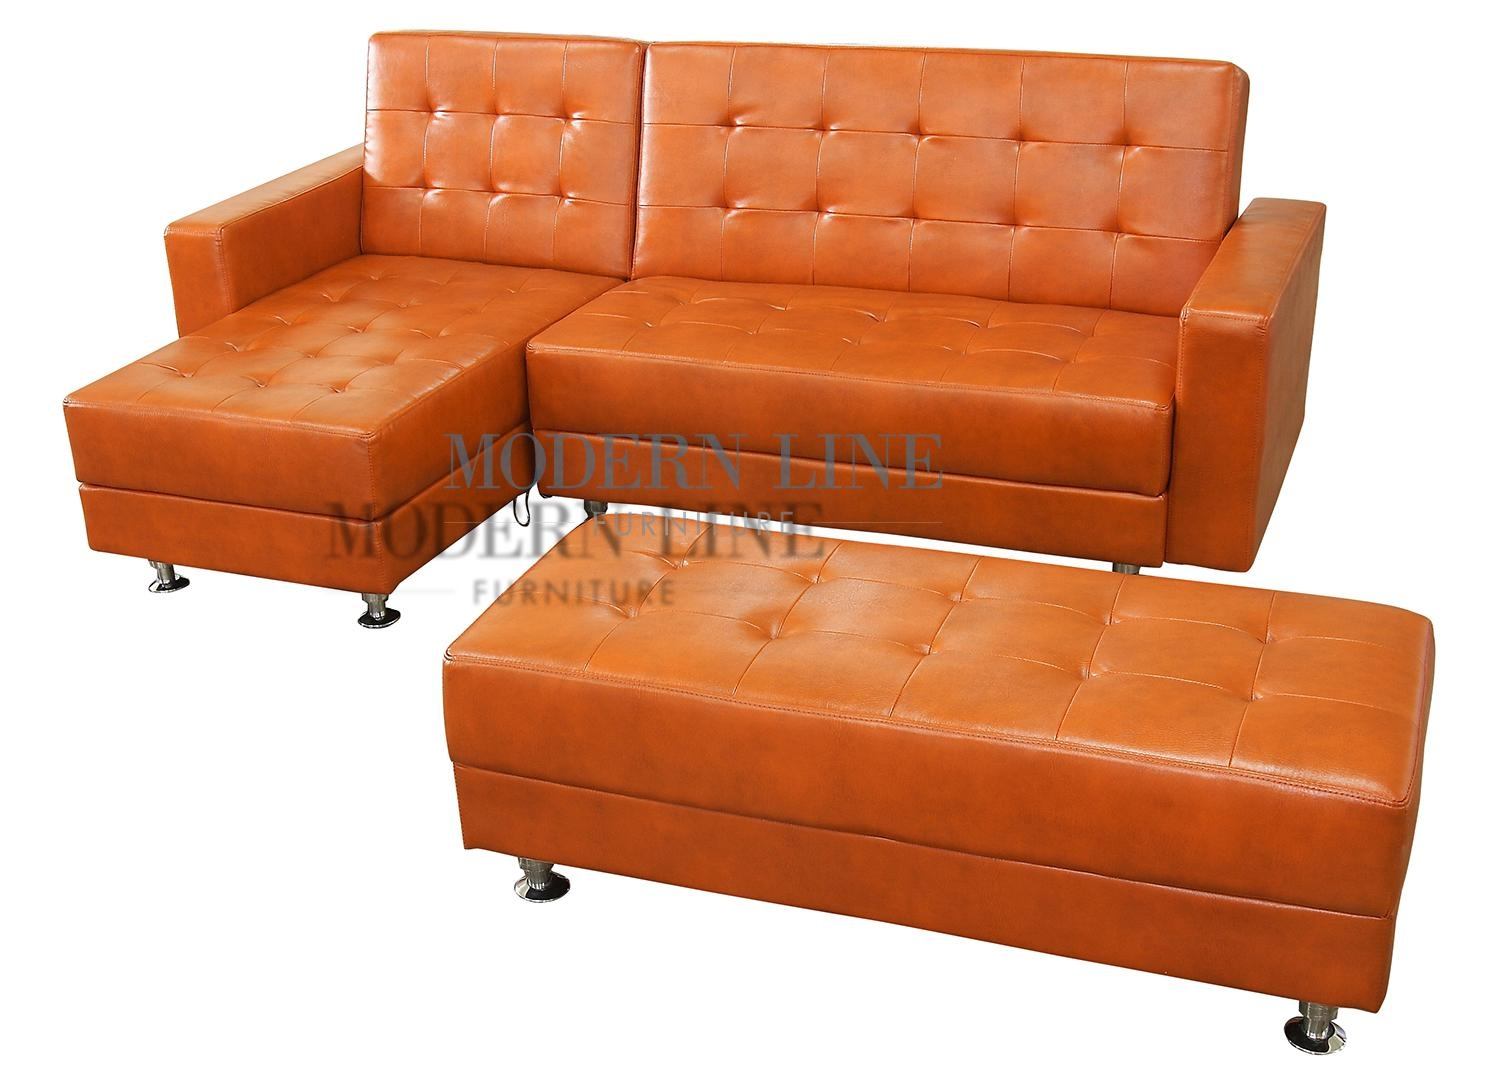 Sofas Center : Burnt Orange Leather Sofa Sleeper Contemporary And For Burnt Orange Leather Sofas (Image 12 of 20)